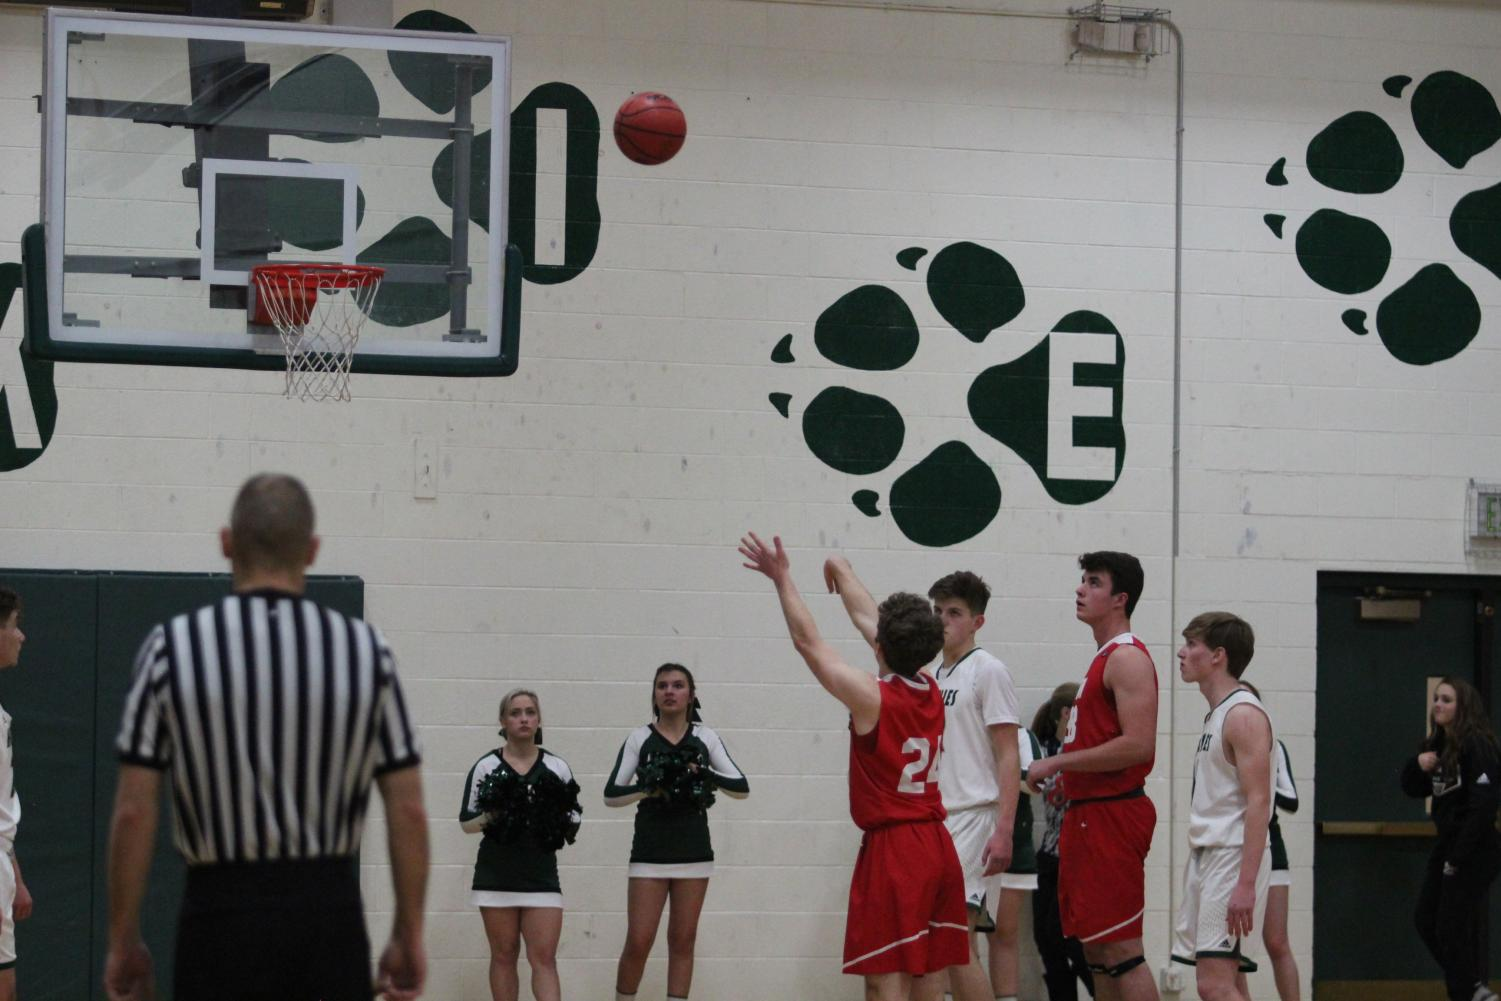 Nic Inda (20) shoots a successful free-throw during the third quarter